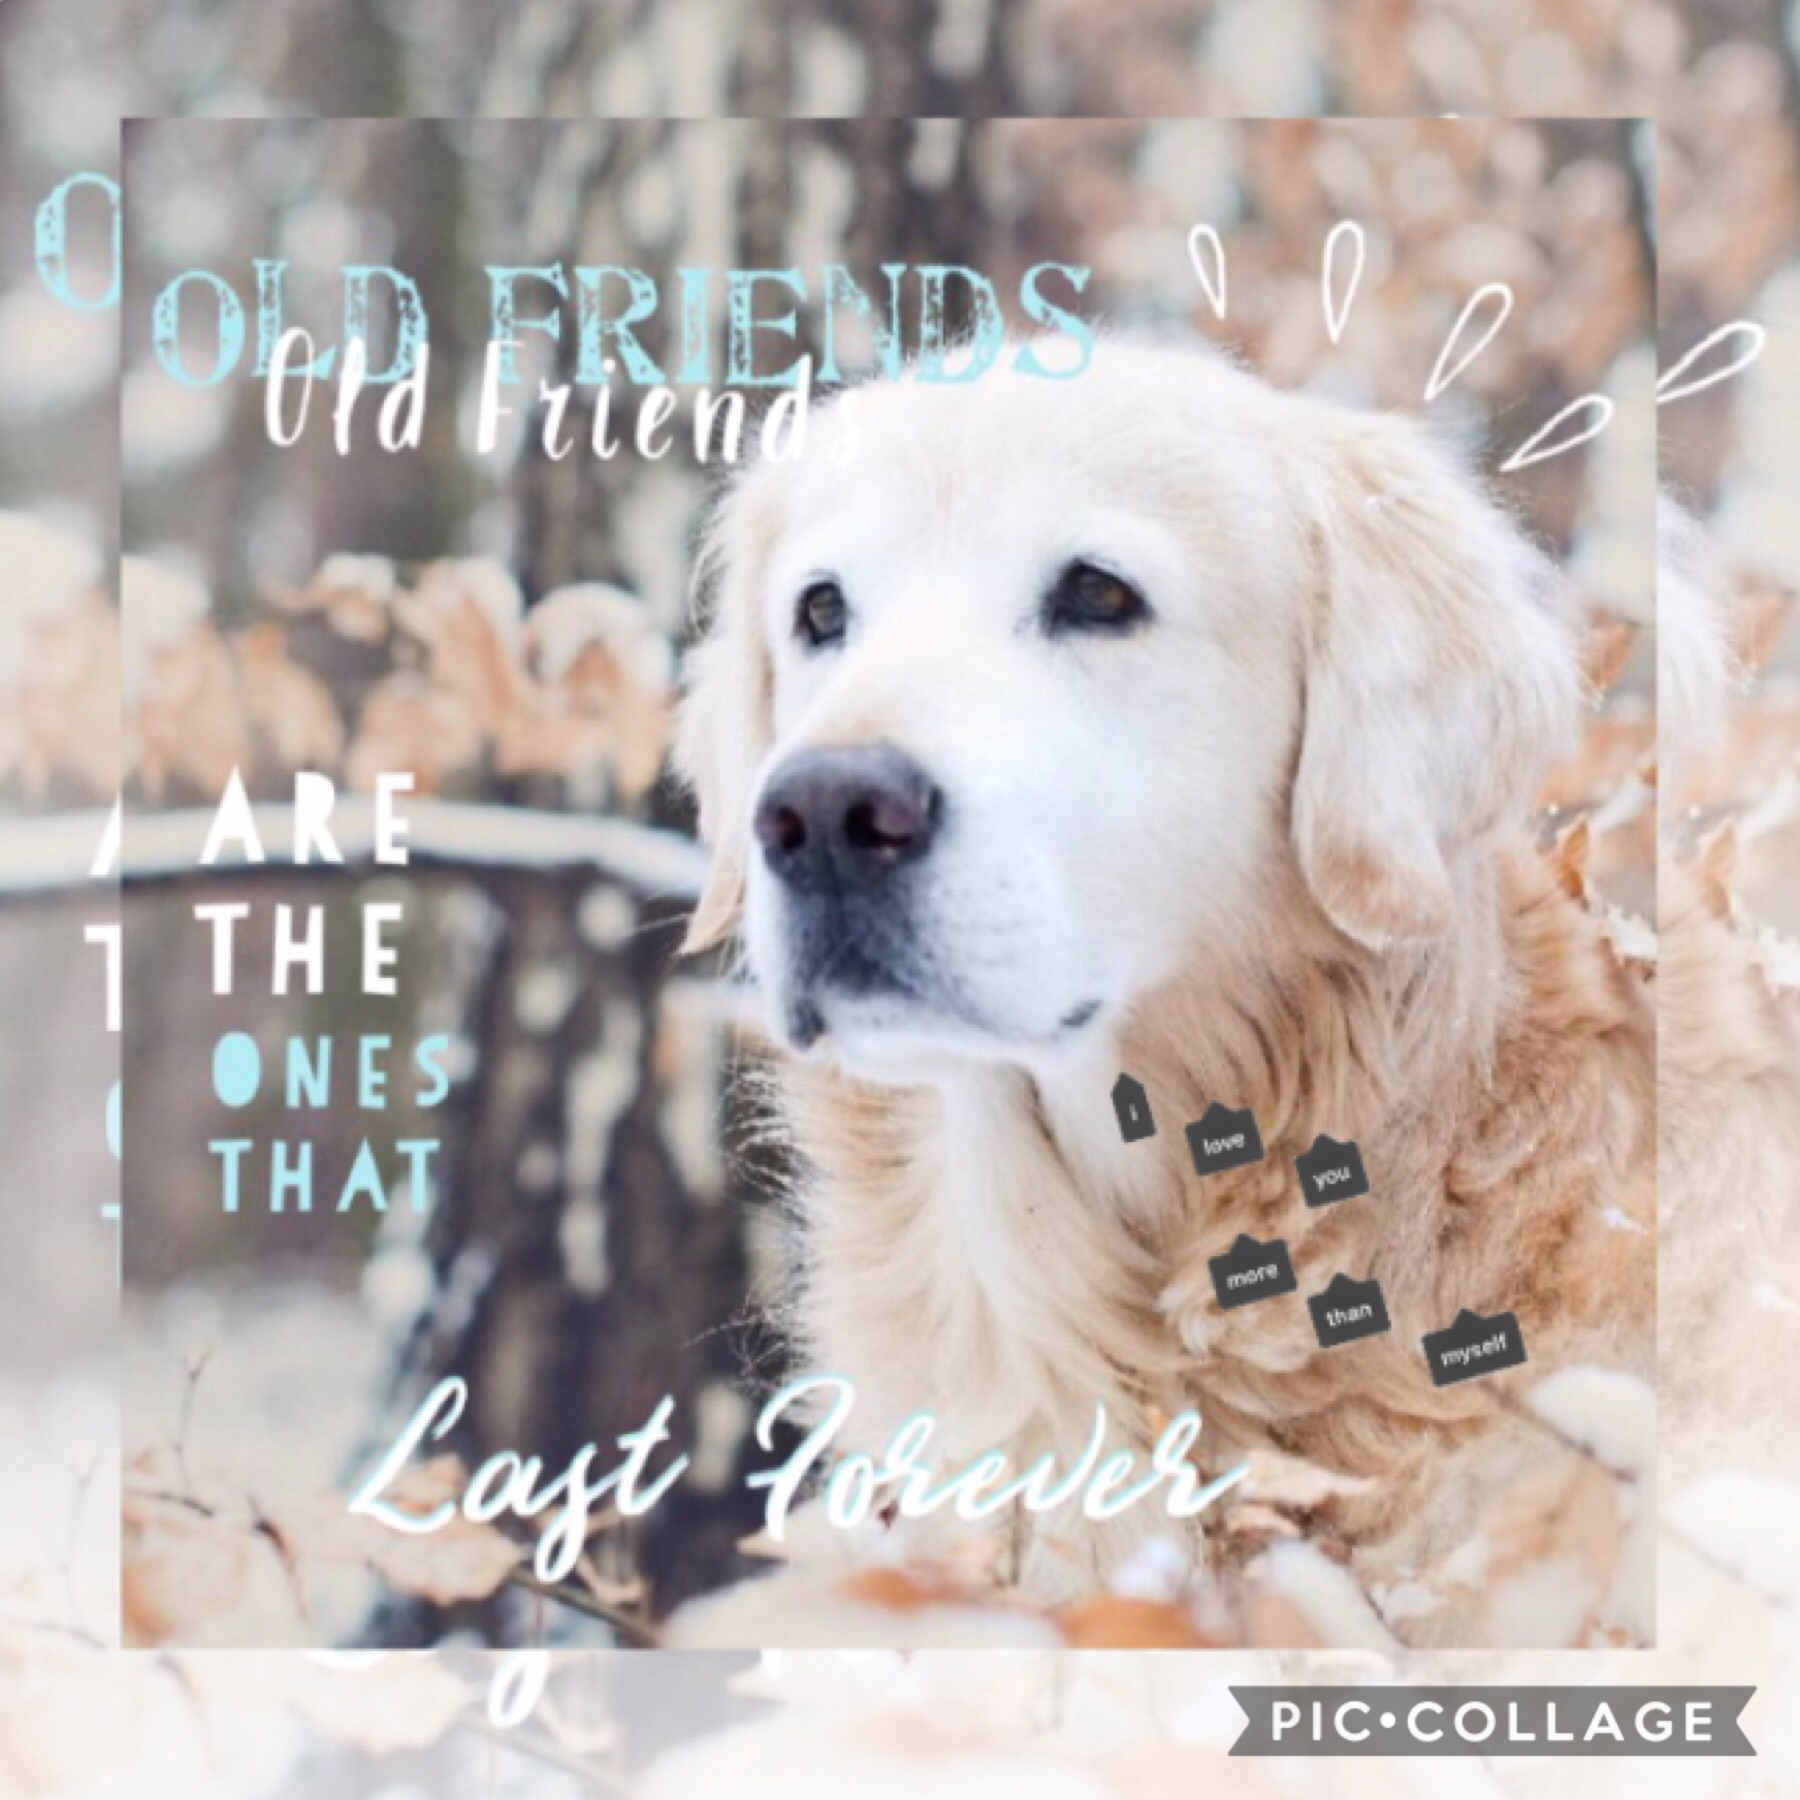 🐕 Tap 🐕  I think this one has a good quote. What do you guys think? Rate out of ten.